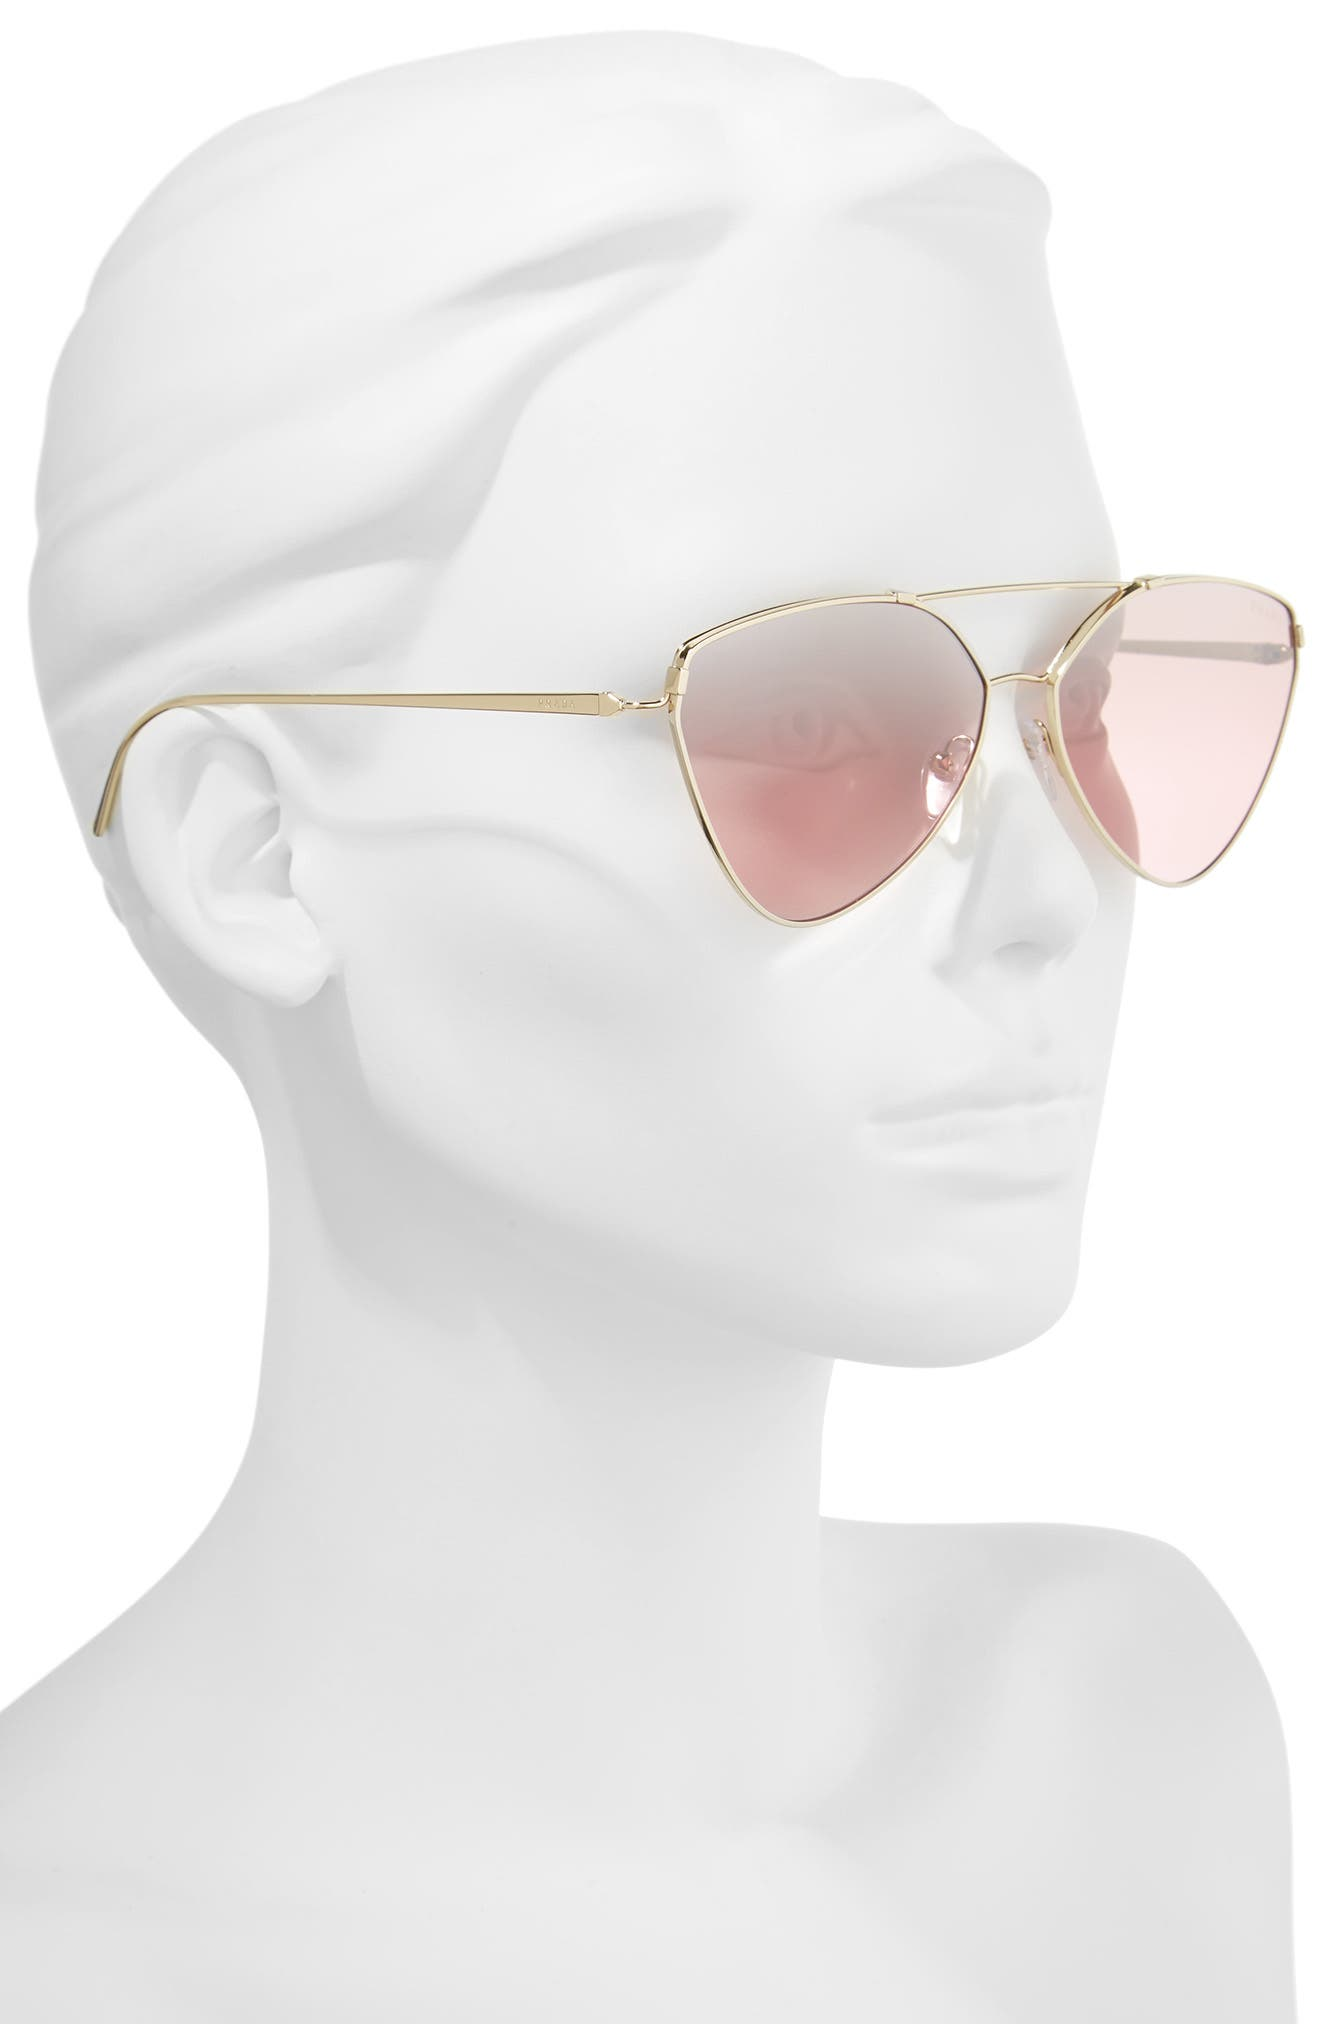 62mm Gradient Aviator Sunglasses,                             Alternate thumbnail 2, color,                             PALE GOLD